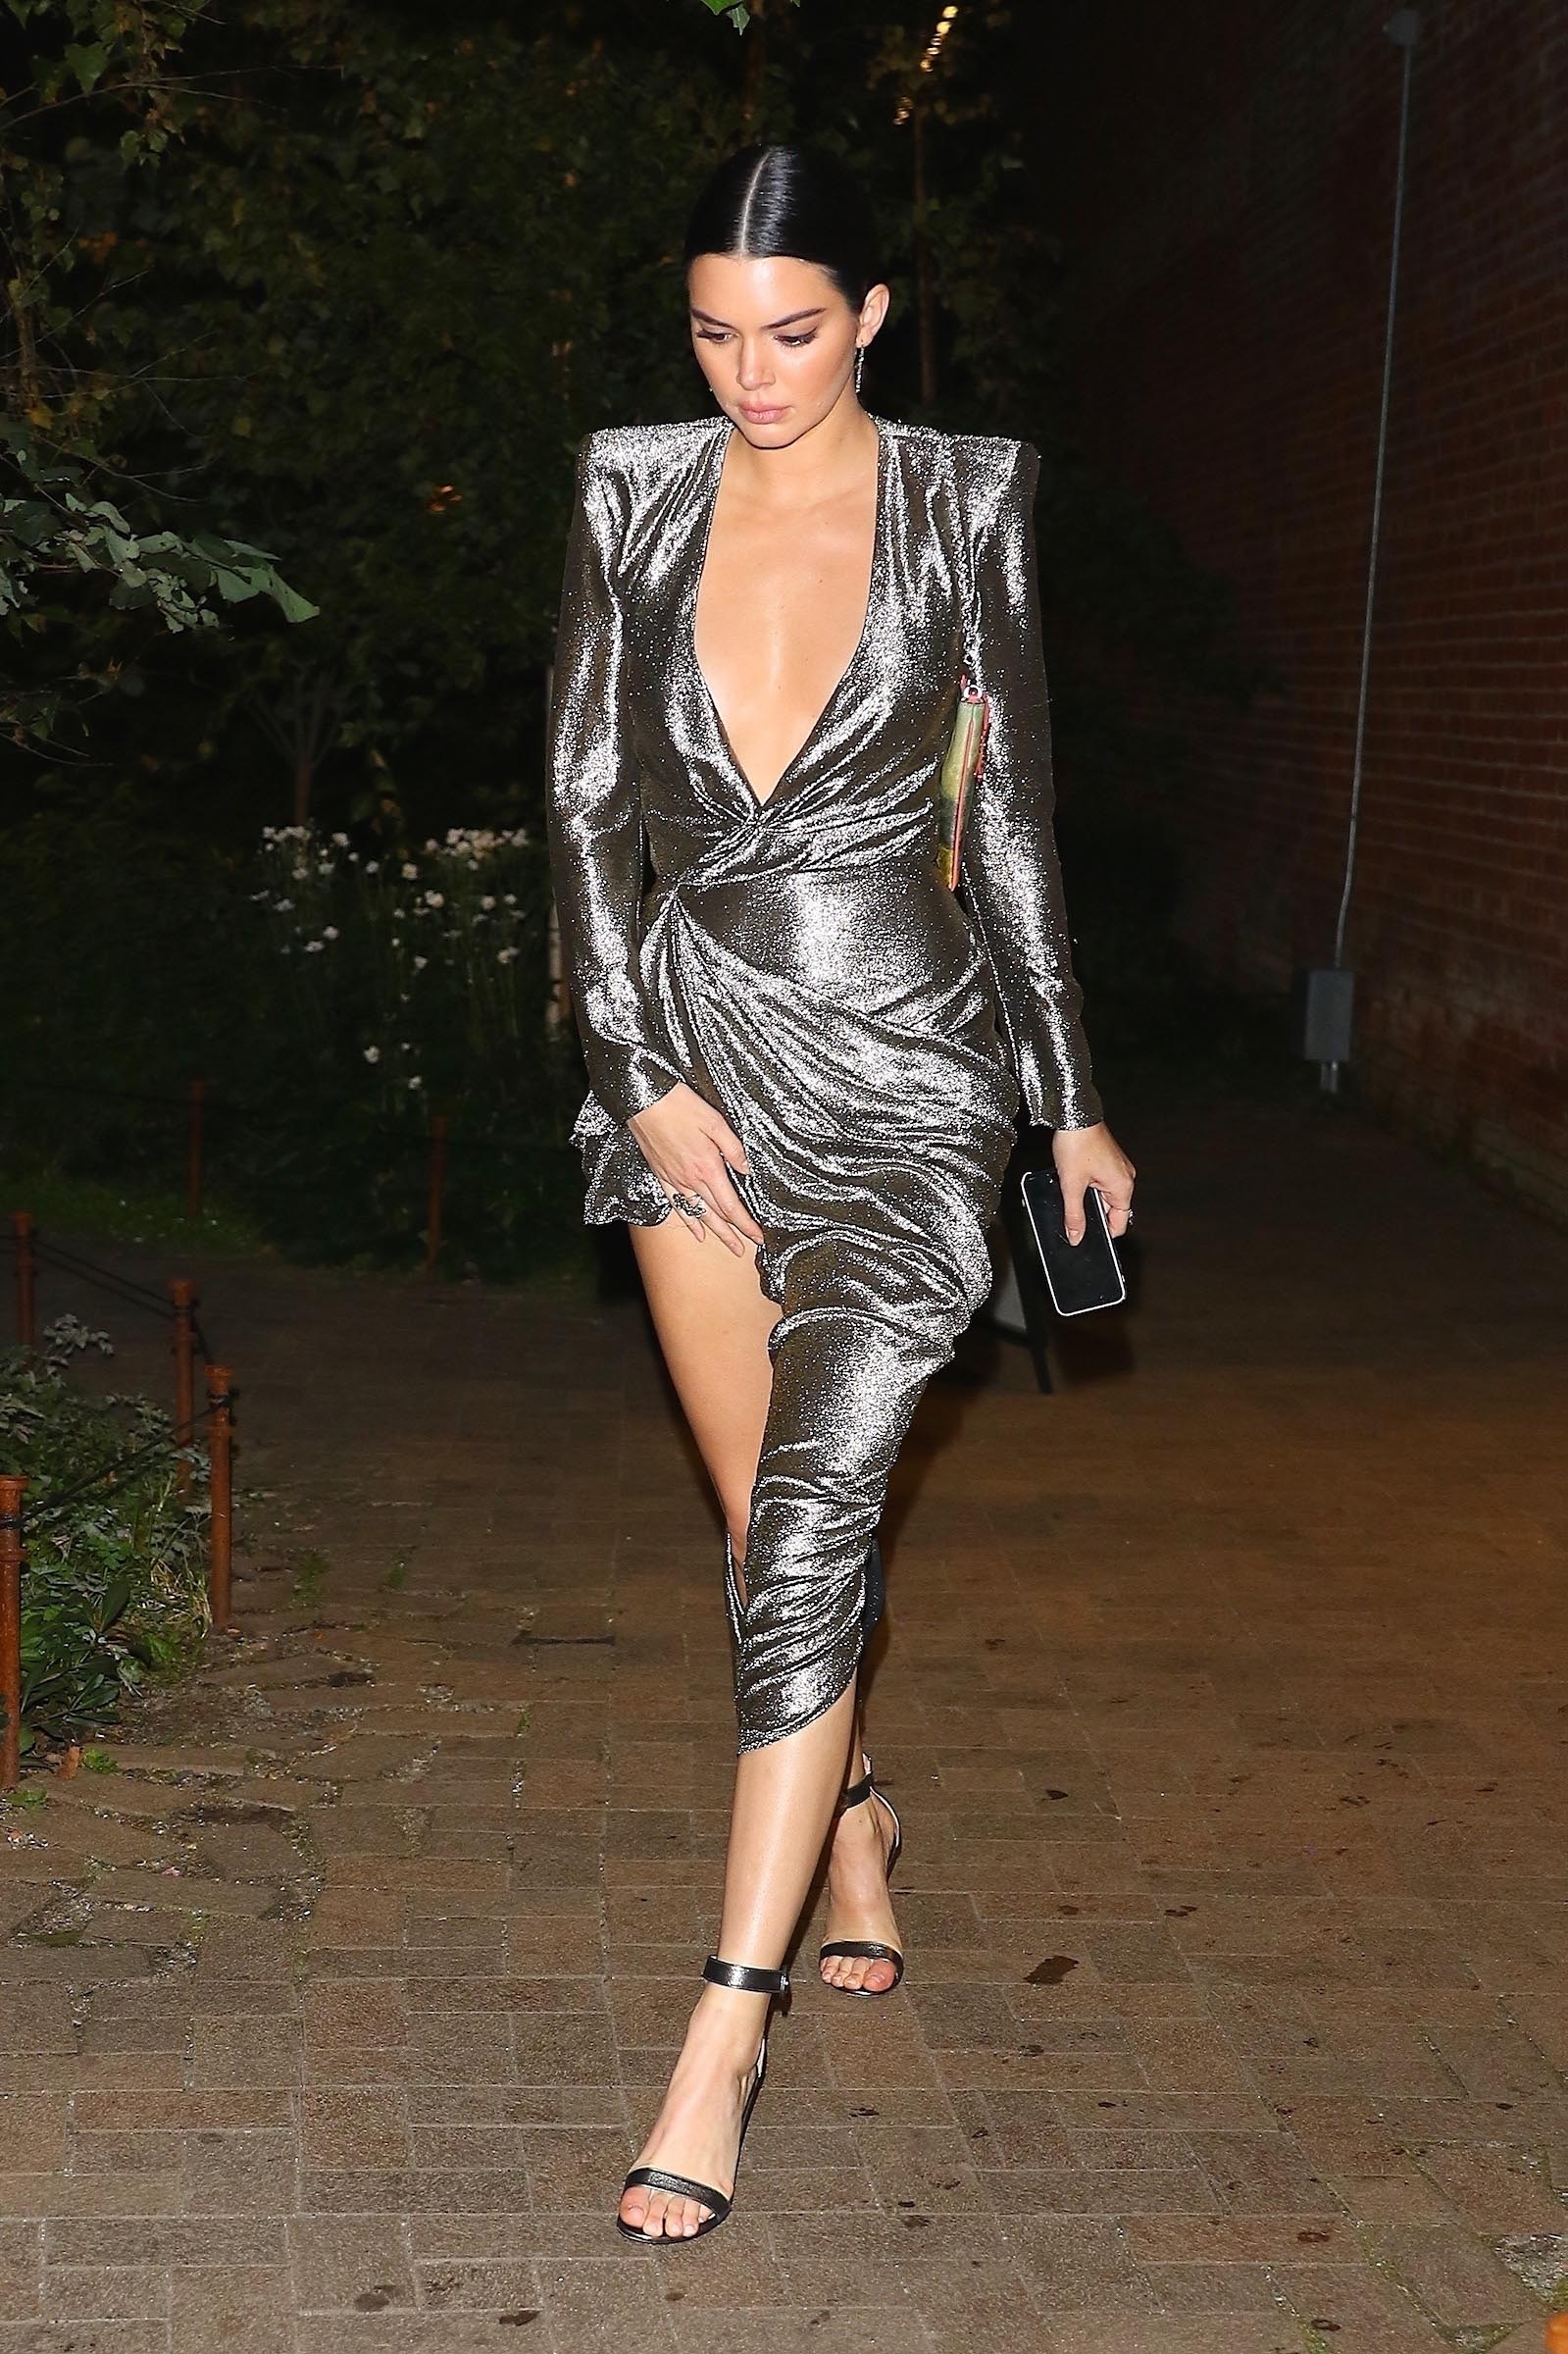 EXCLUSIVE Kendall Jenner Looks Stunning in Silver Dress